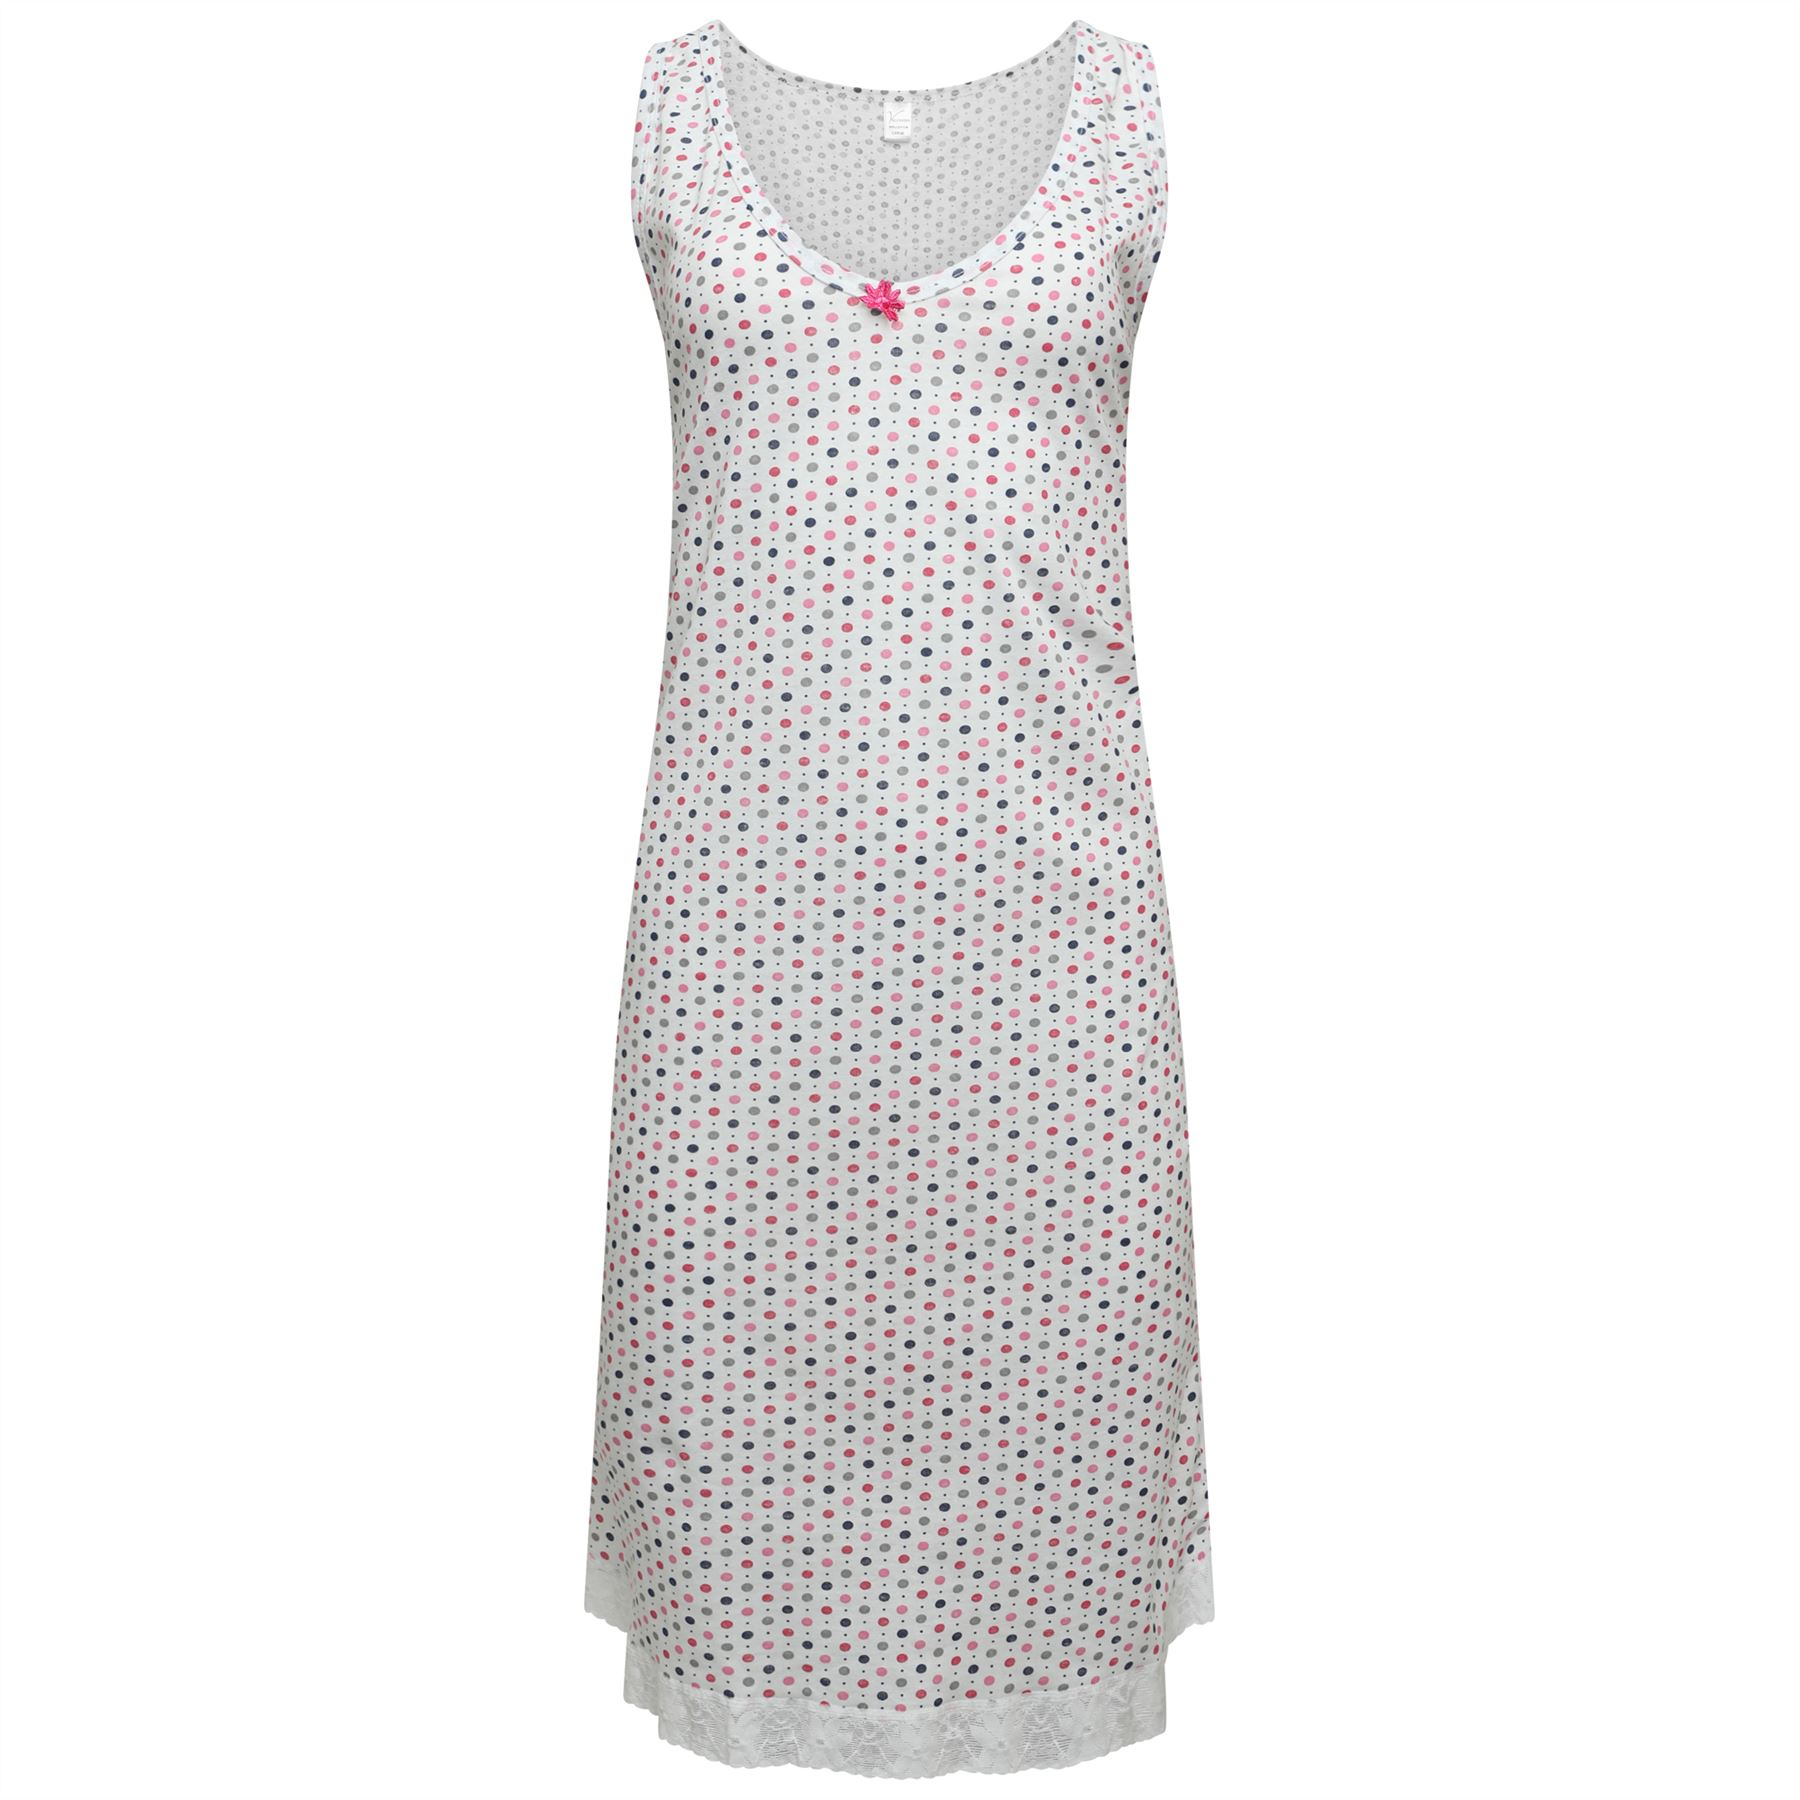 Details about Ladies Sleeveless Nightie Womens Cotton Nightdress V-Neck  Spotted Design M-2XL 788706cae